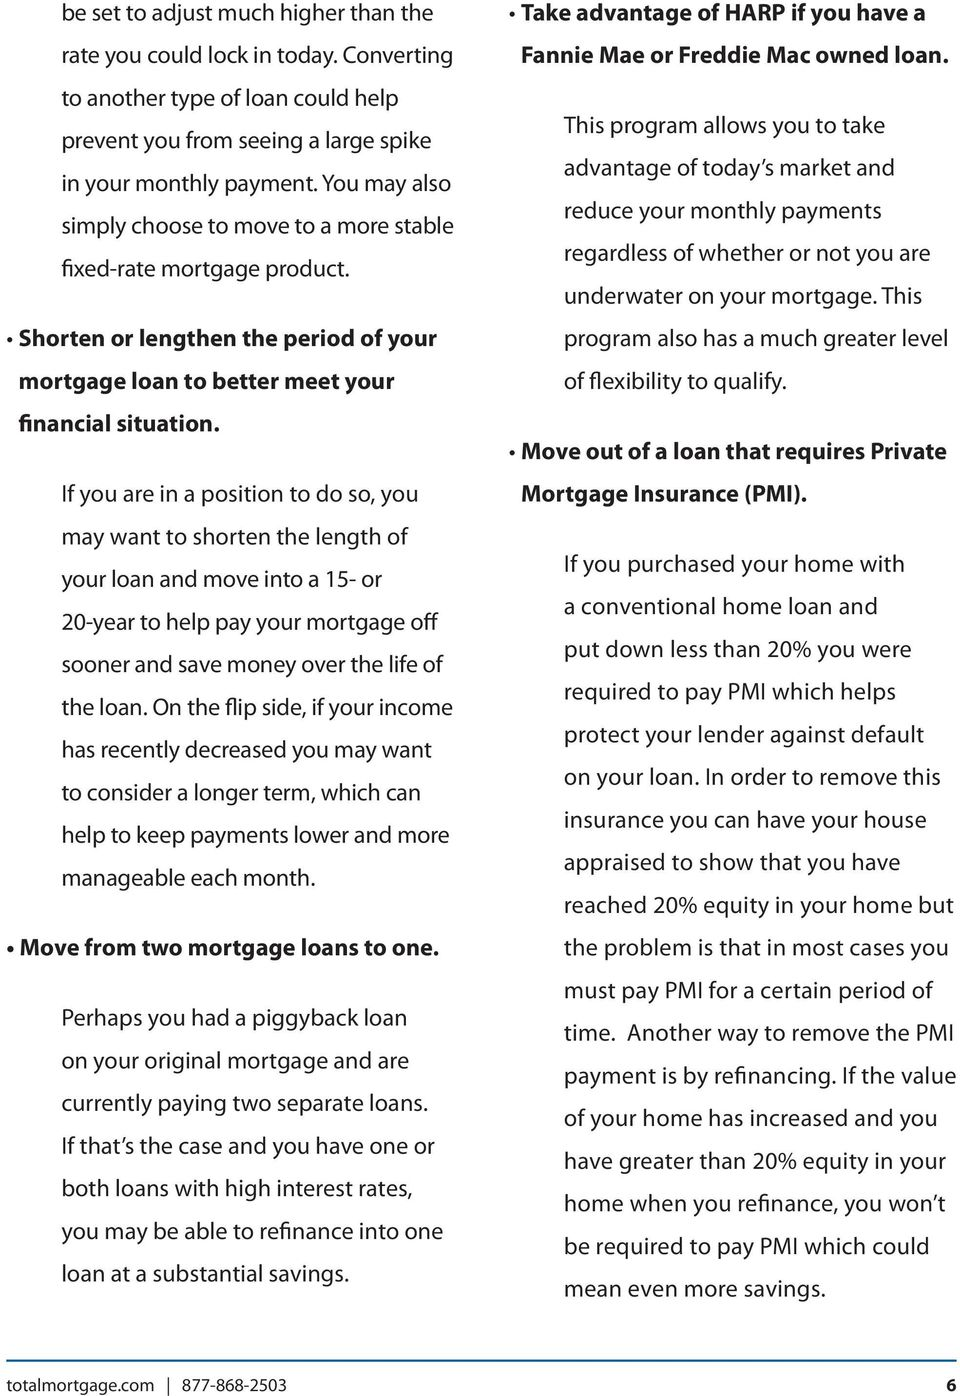 If you are in a position to do so, you may want to shorten the length of your loan and move into a 15- or 20-year to help pay your mortgage off sooner and save money over the life of the loan.